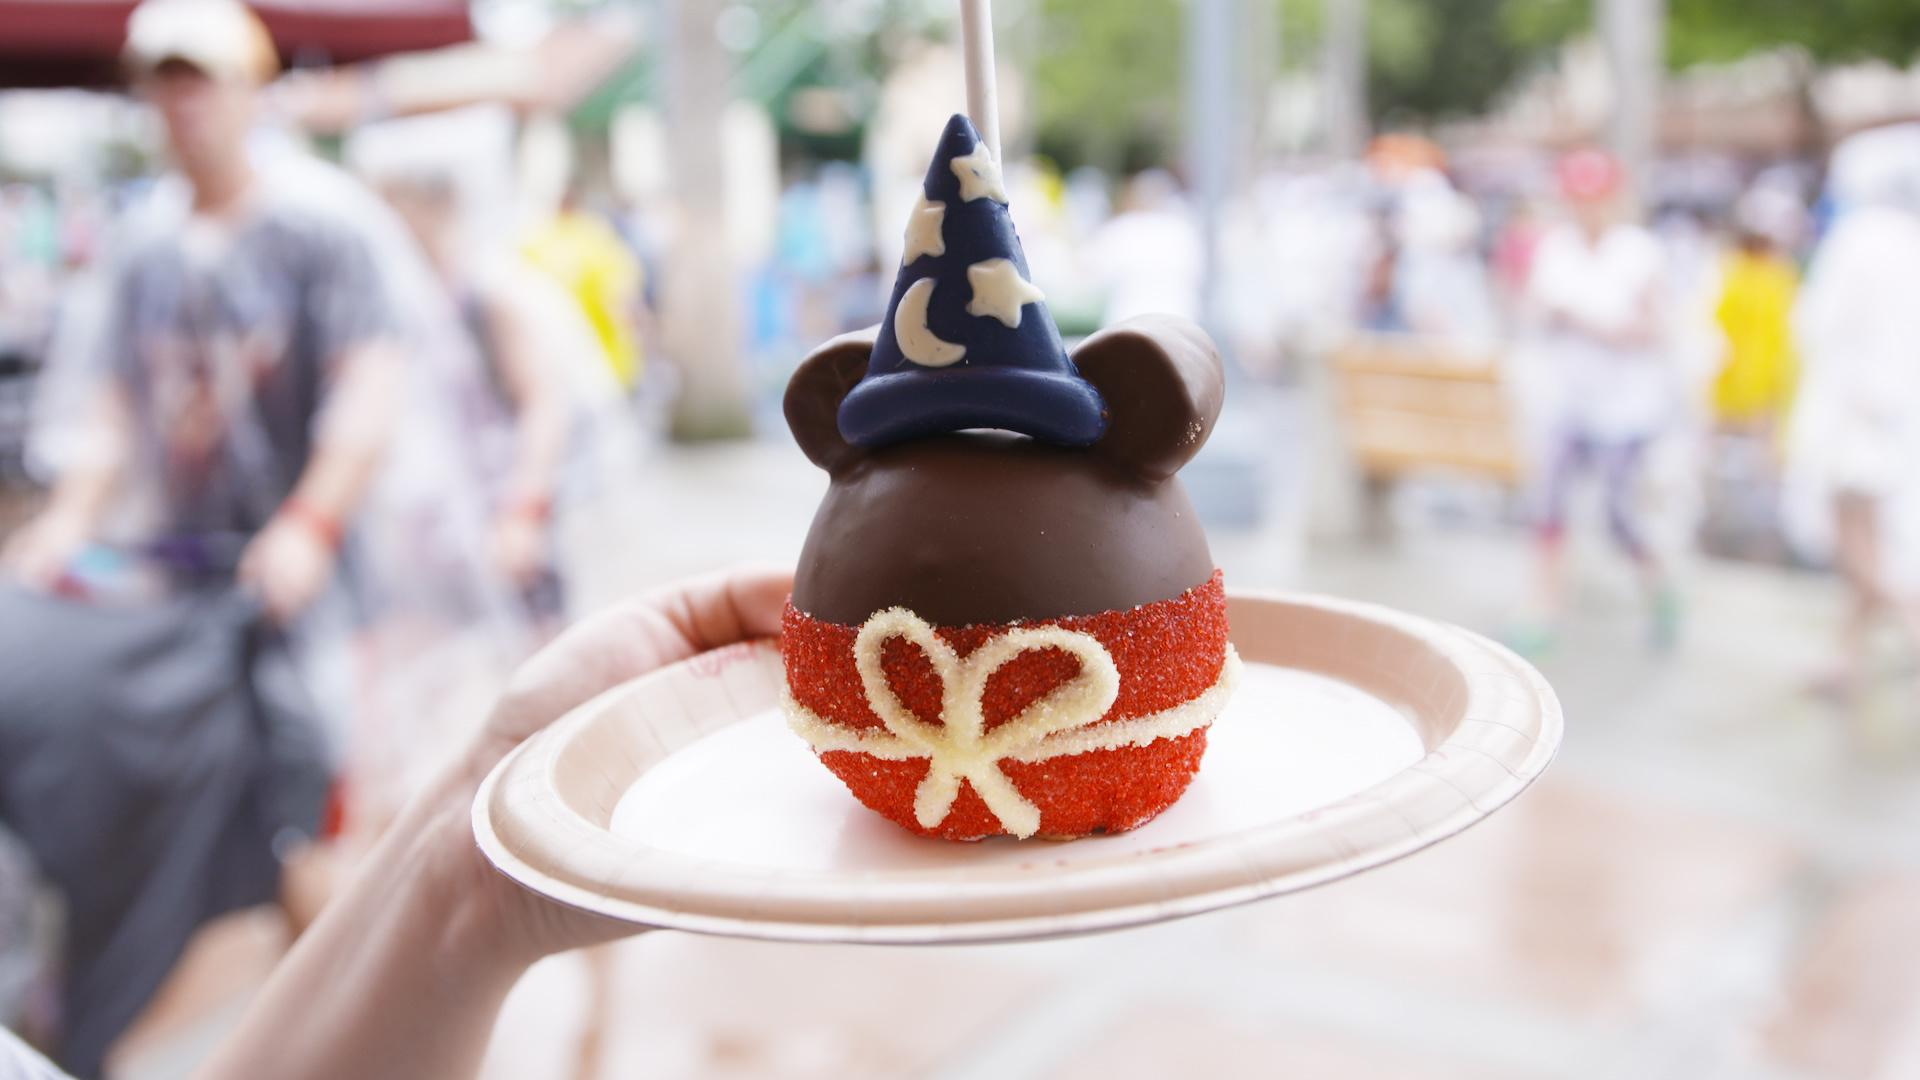 8 restaurants in Disney World that are totally worth it